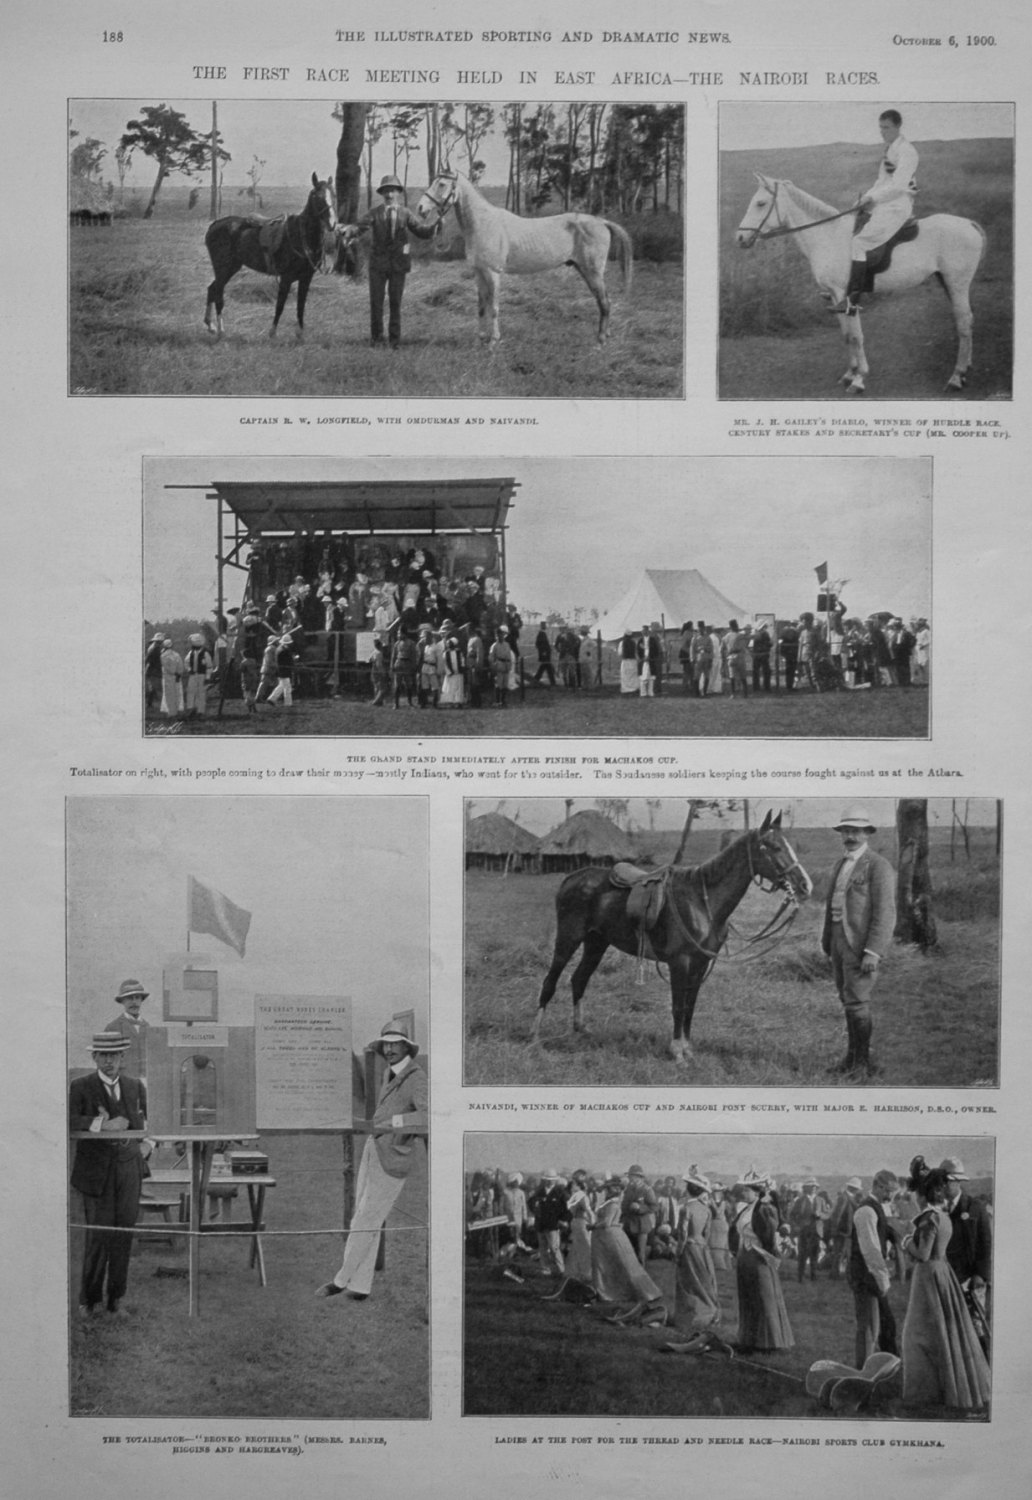 The First Race Meeting Held in East Africa - The Nairobi Races. 1900